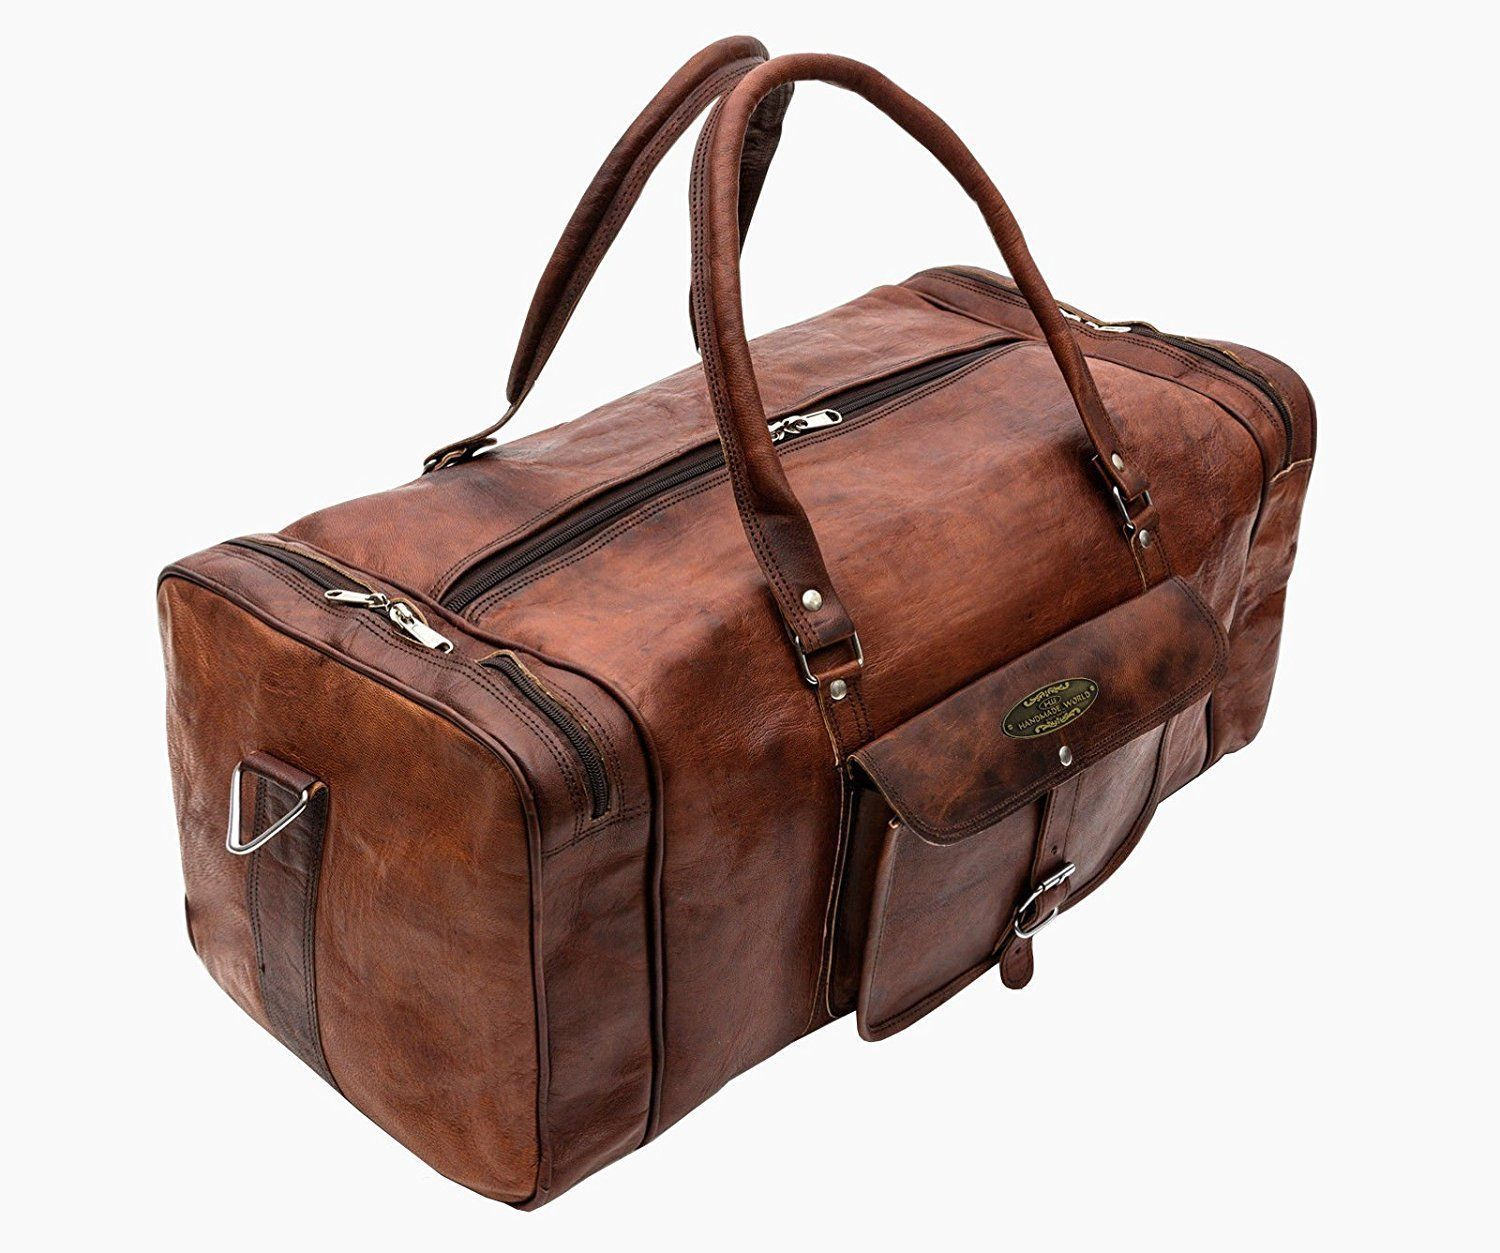 06e8d8df64e5 Men s Luxury Leather Travel Weekend Luggage Duffel Gym Messenger Bags  Suitcases